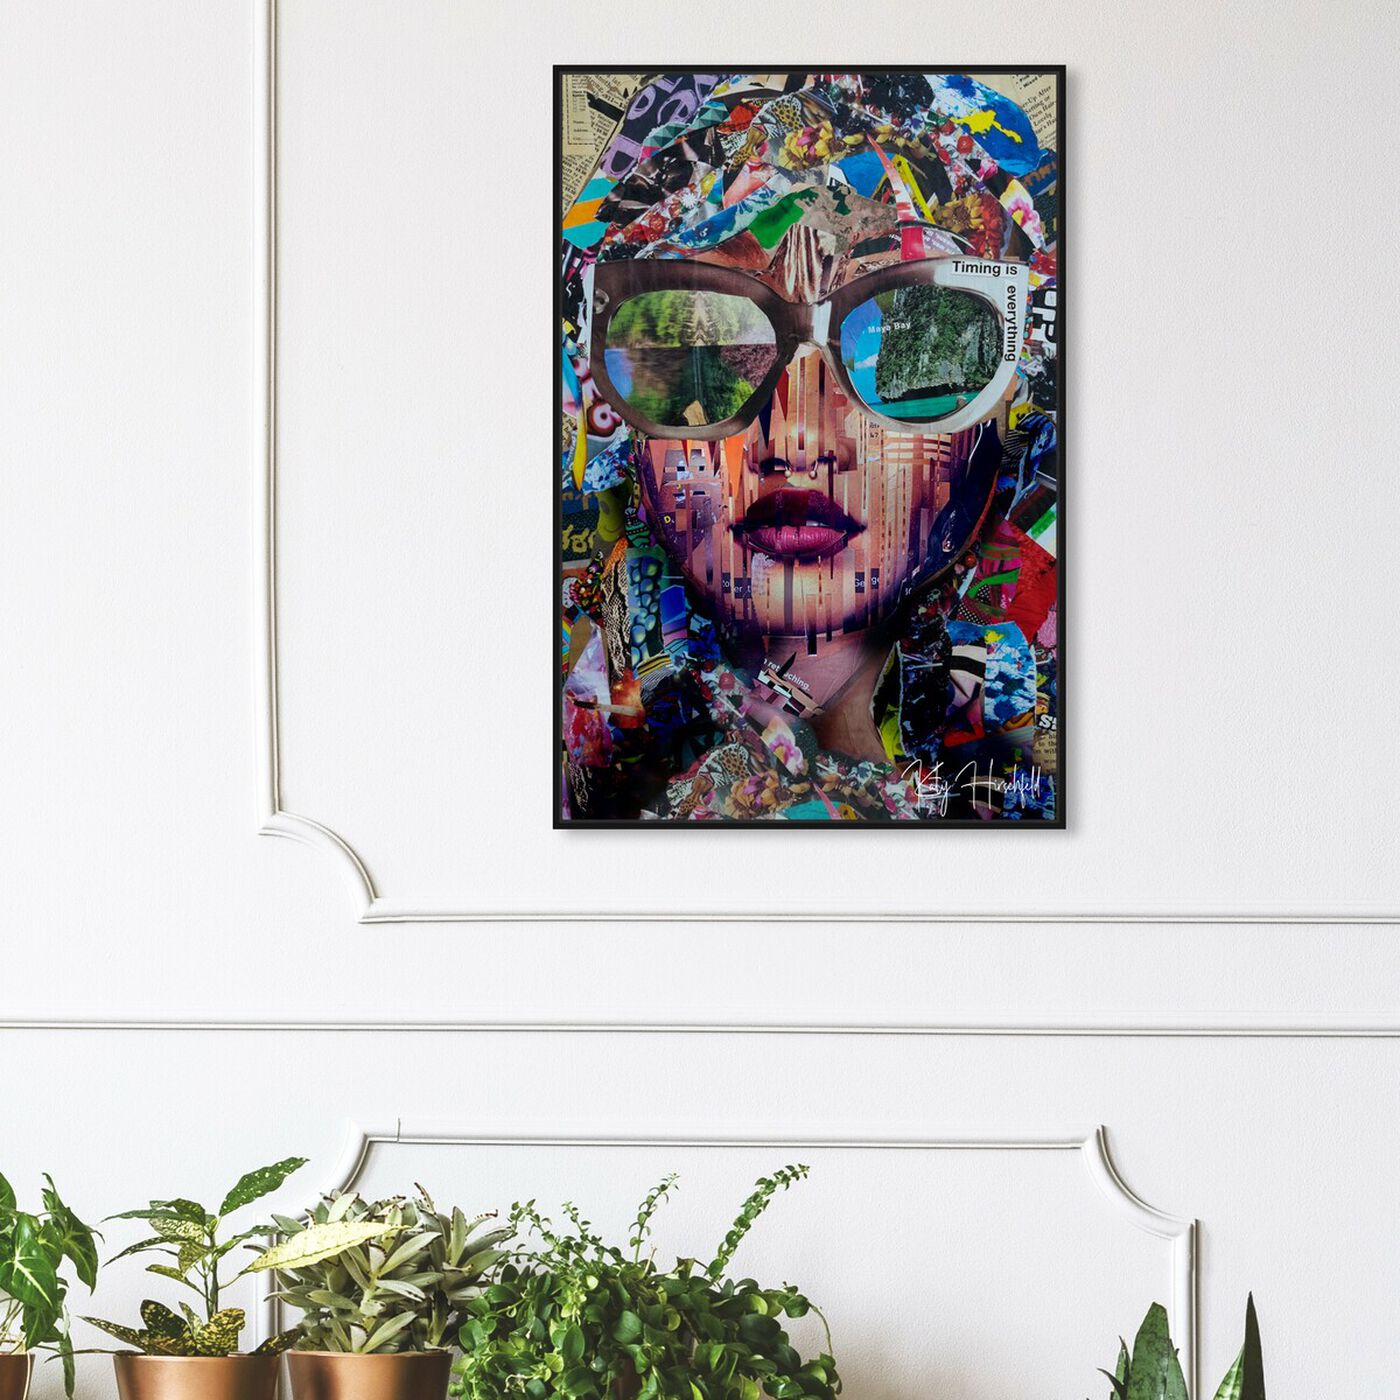 Hanging view of Katy Hirshfeld - Timing is Real featuring abstract and textures art.